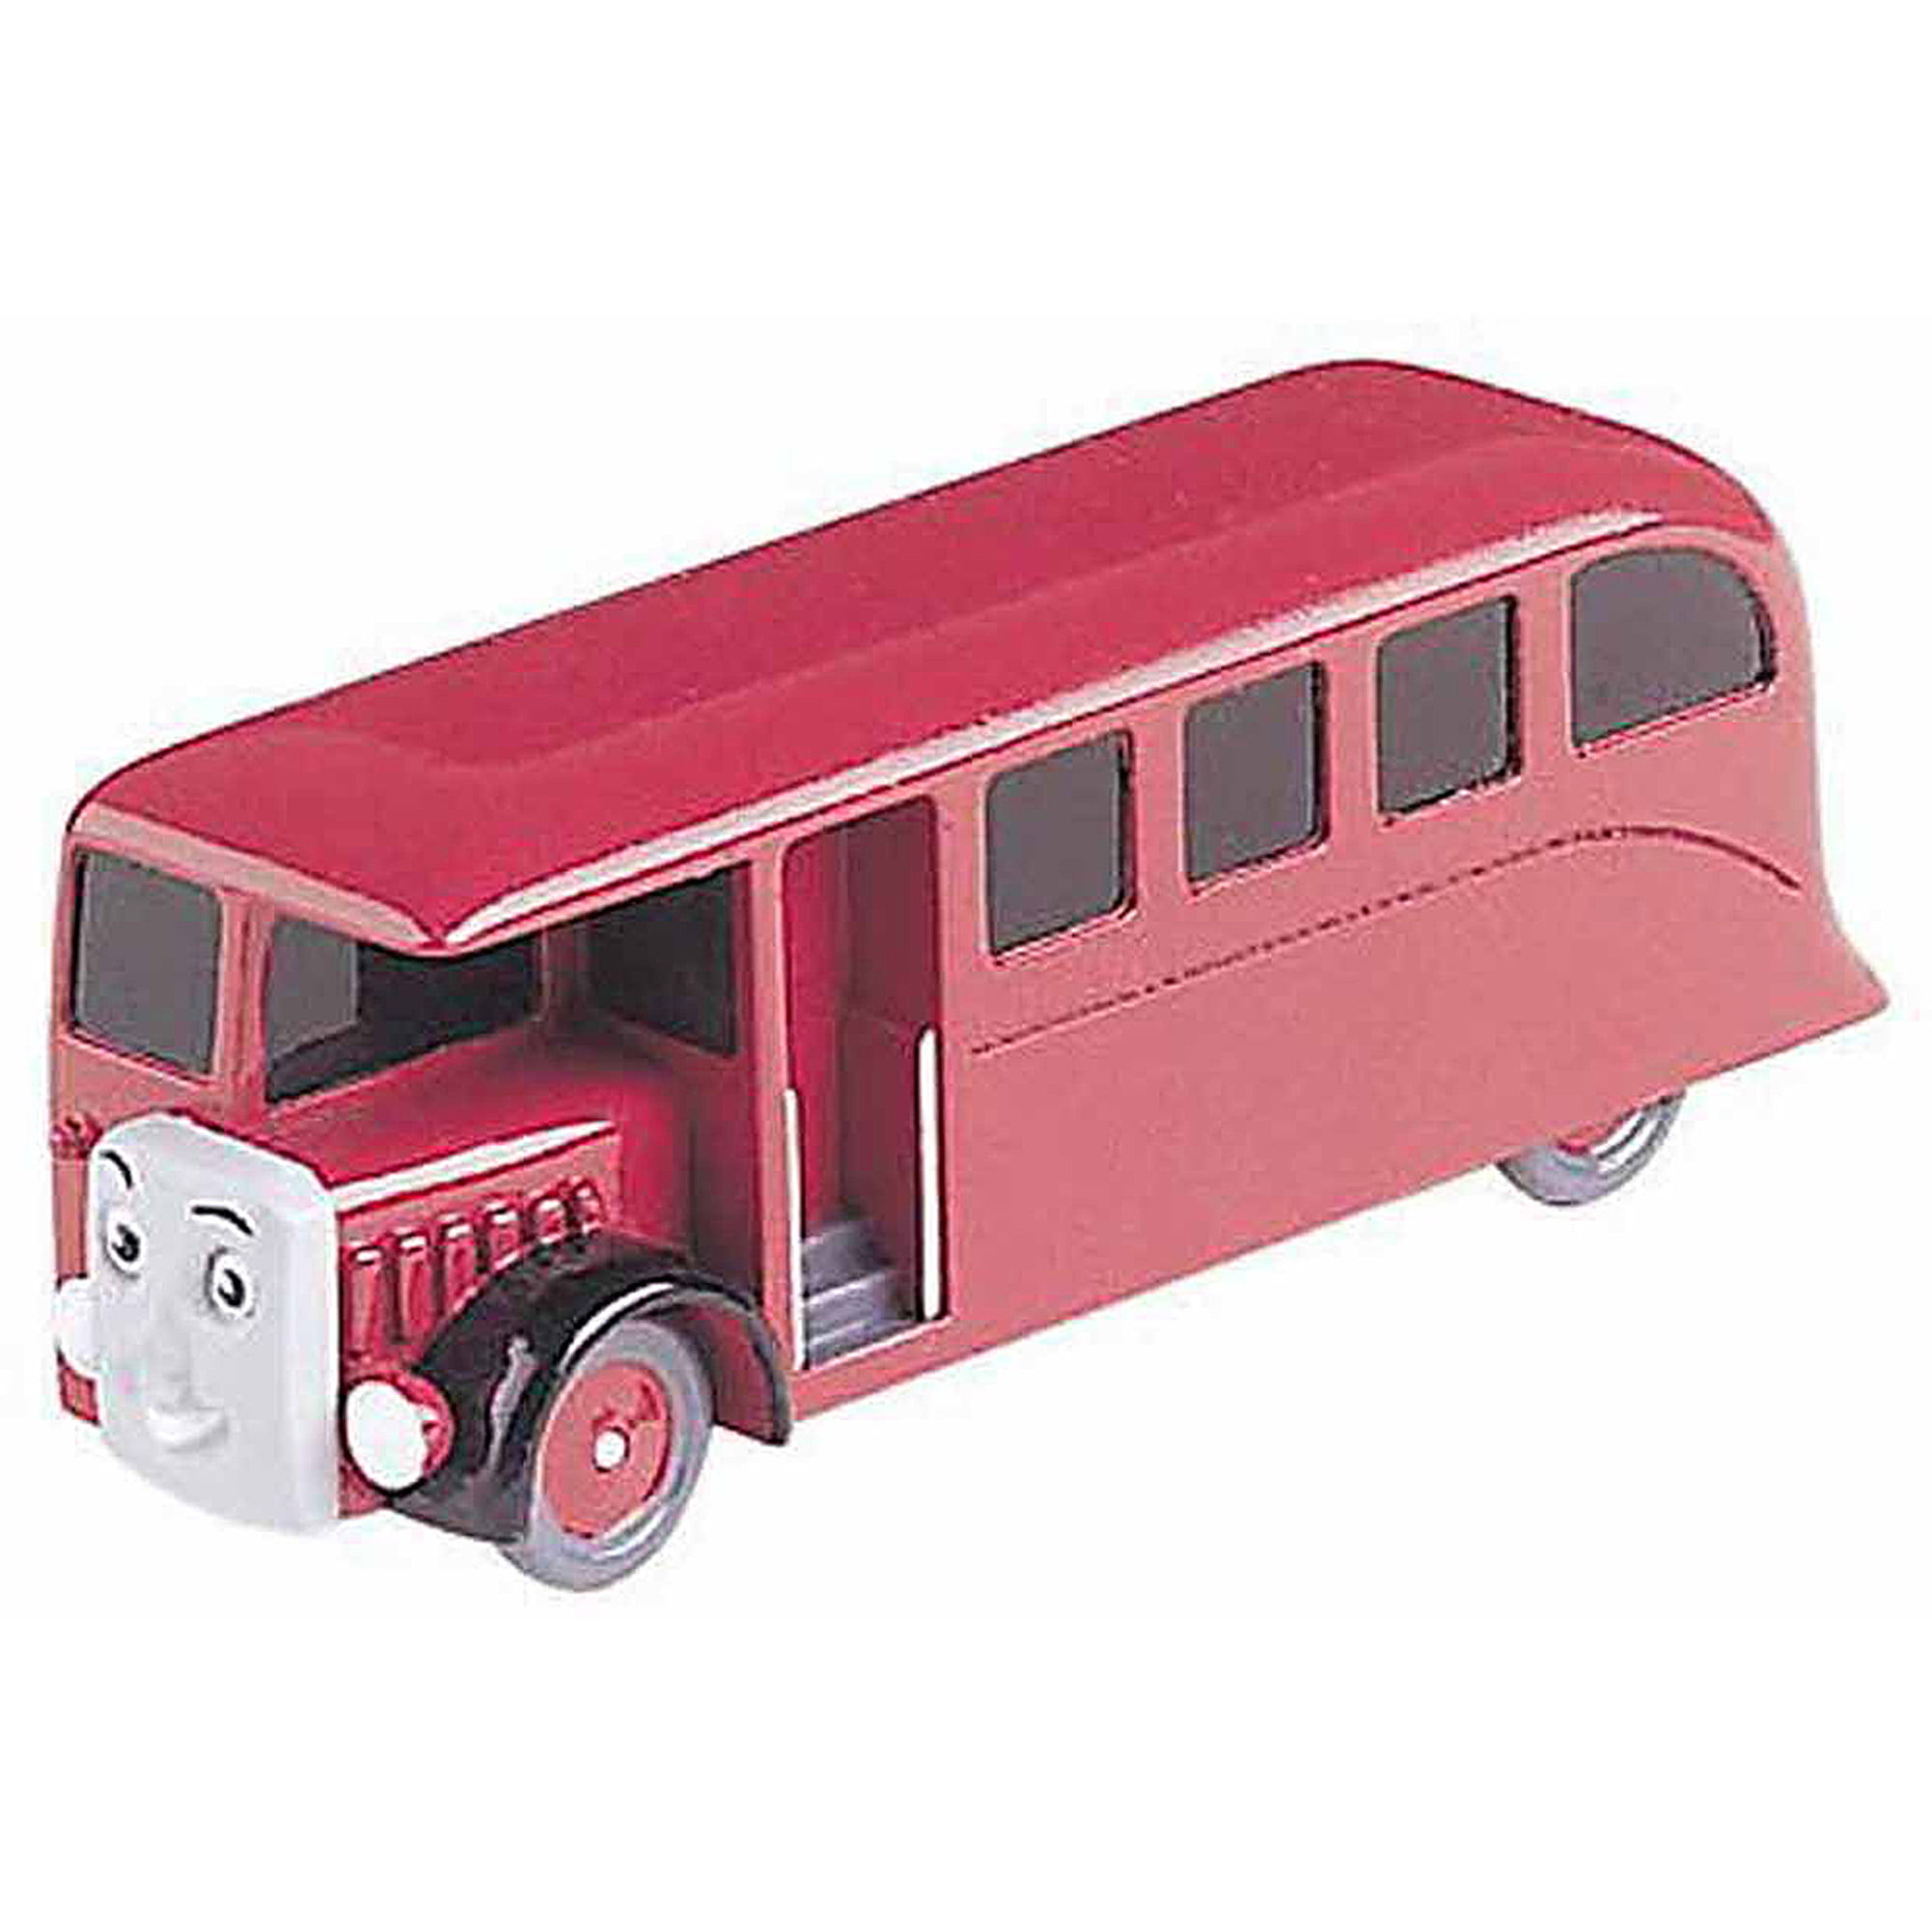 Bachmann Trains Thomas and Friends Bertie The Bus Scenery Item, HO Scale by Bachmann